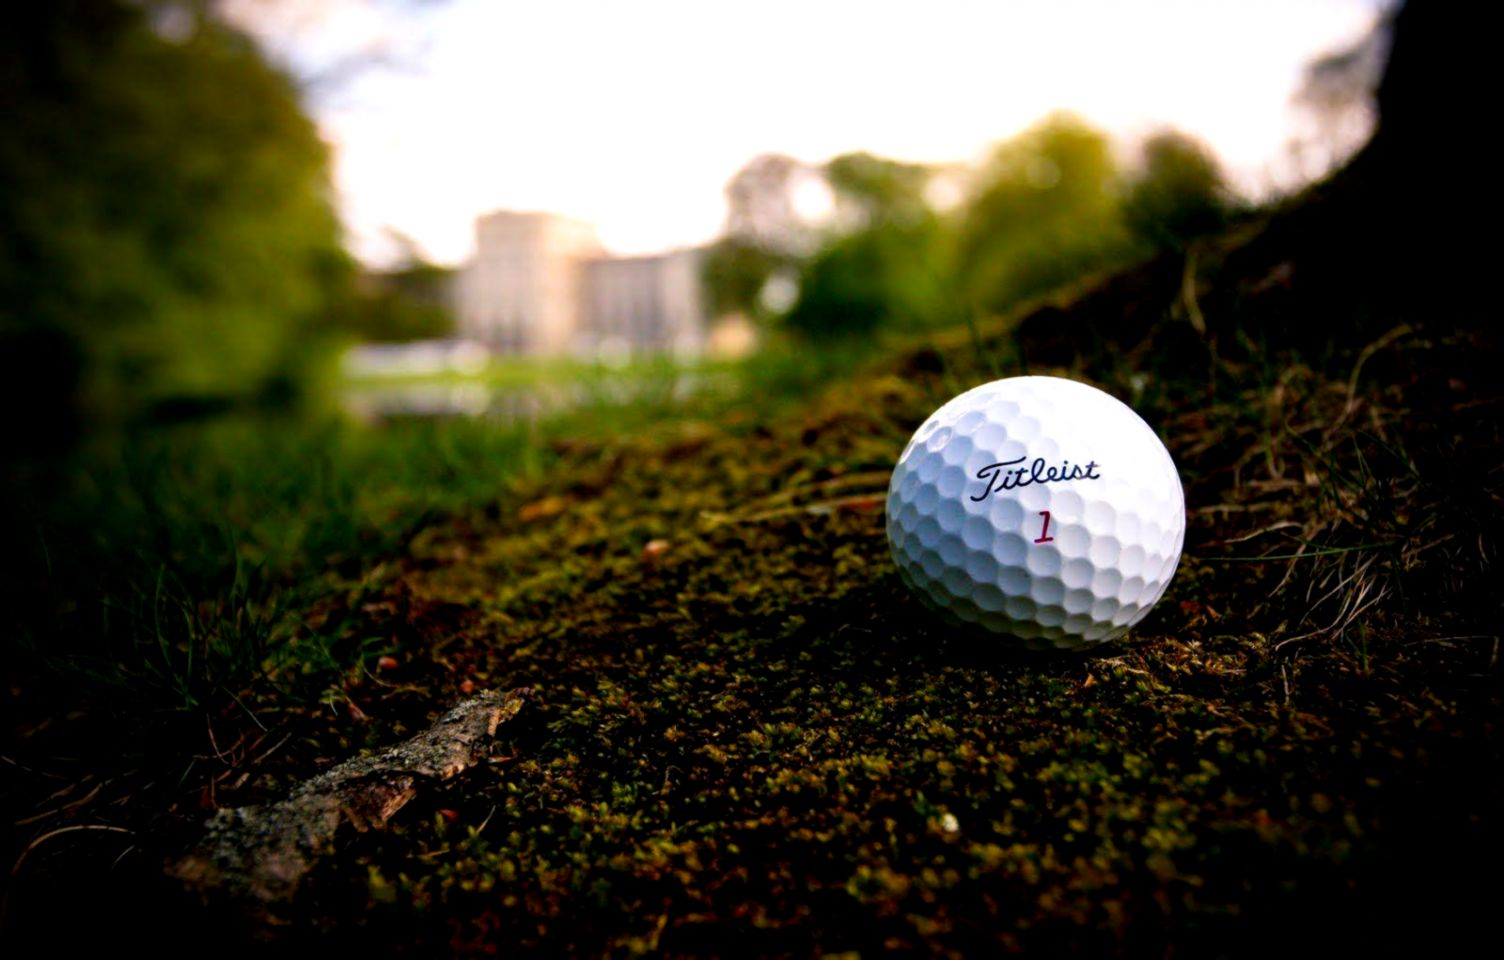 6a159bc1afc Titleist Golf Wallpaper Shared by Ricky Scalsys